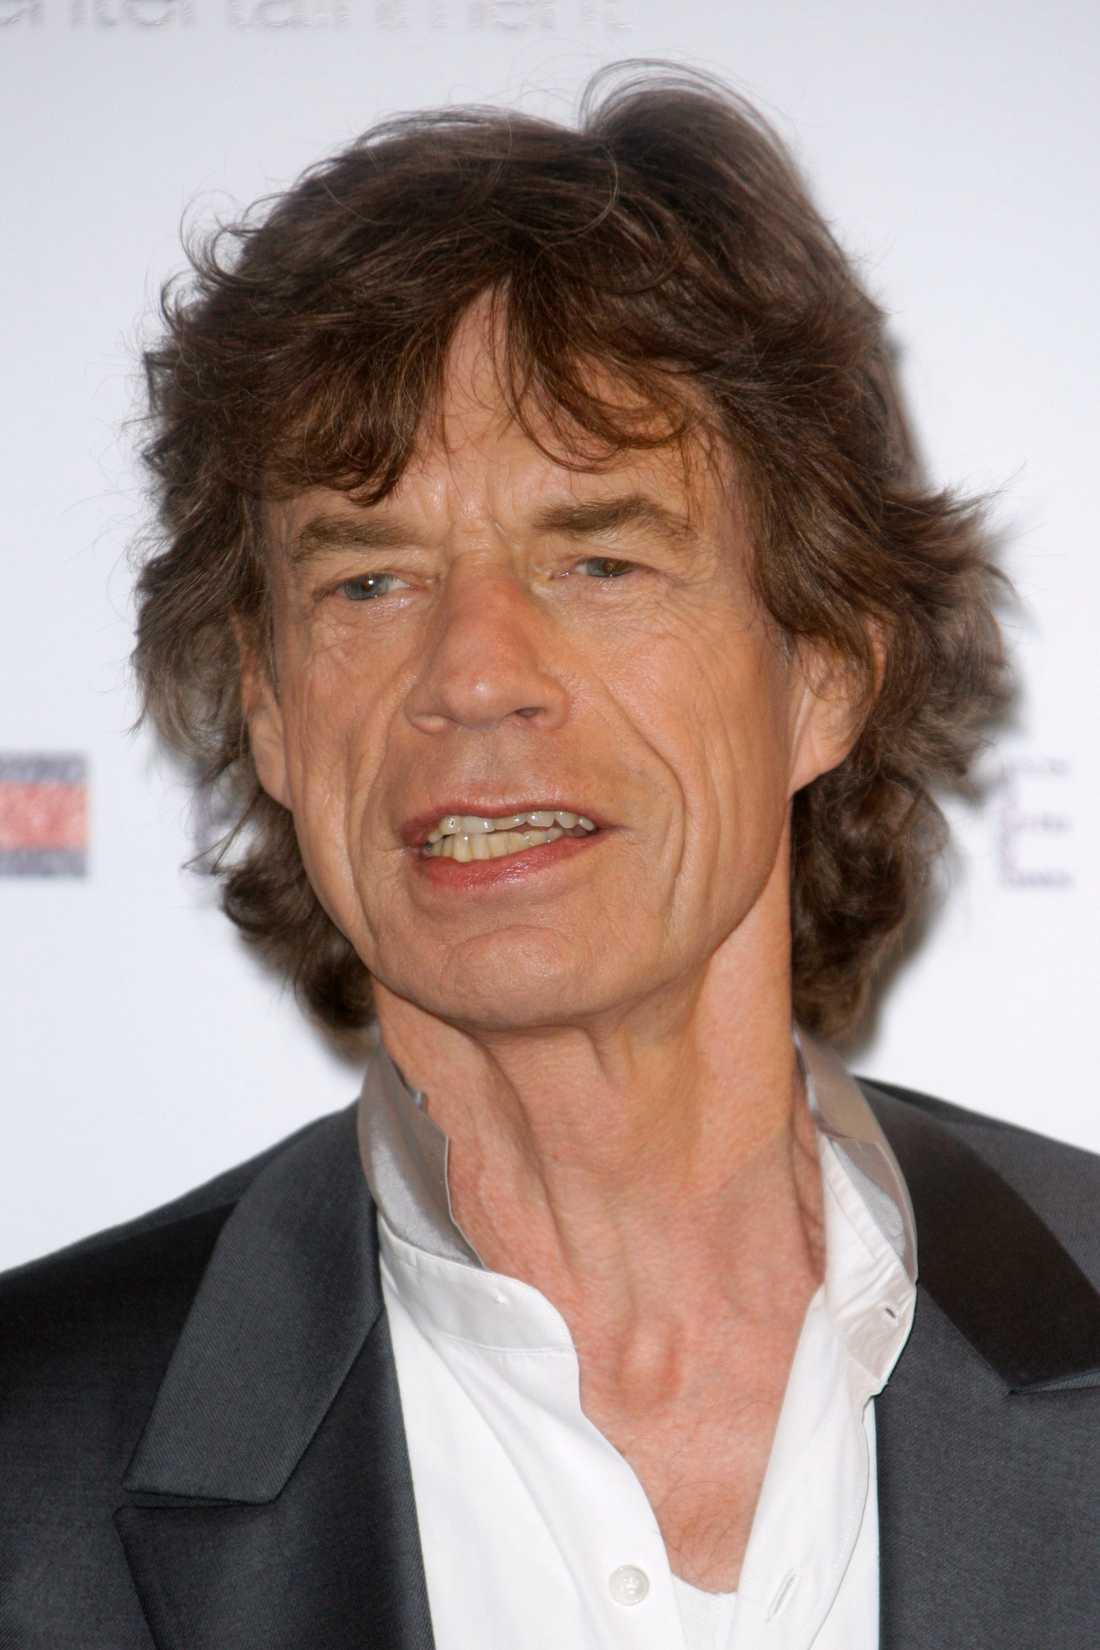 18 Mick Jagger, The Rolling Stones.